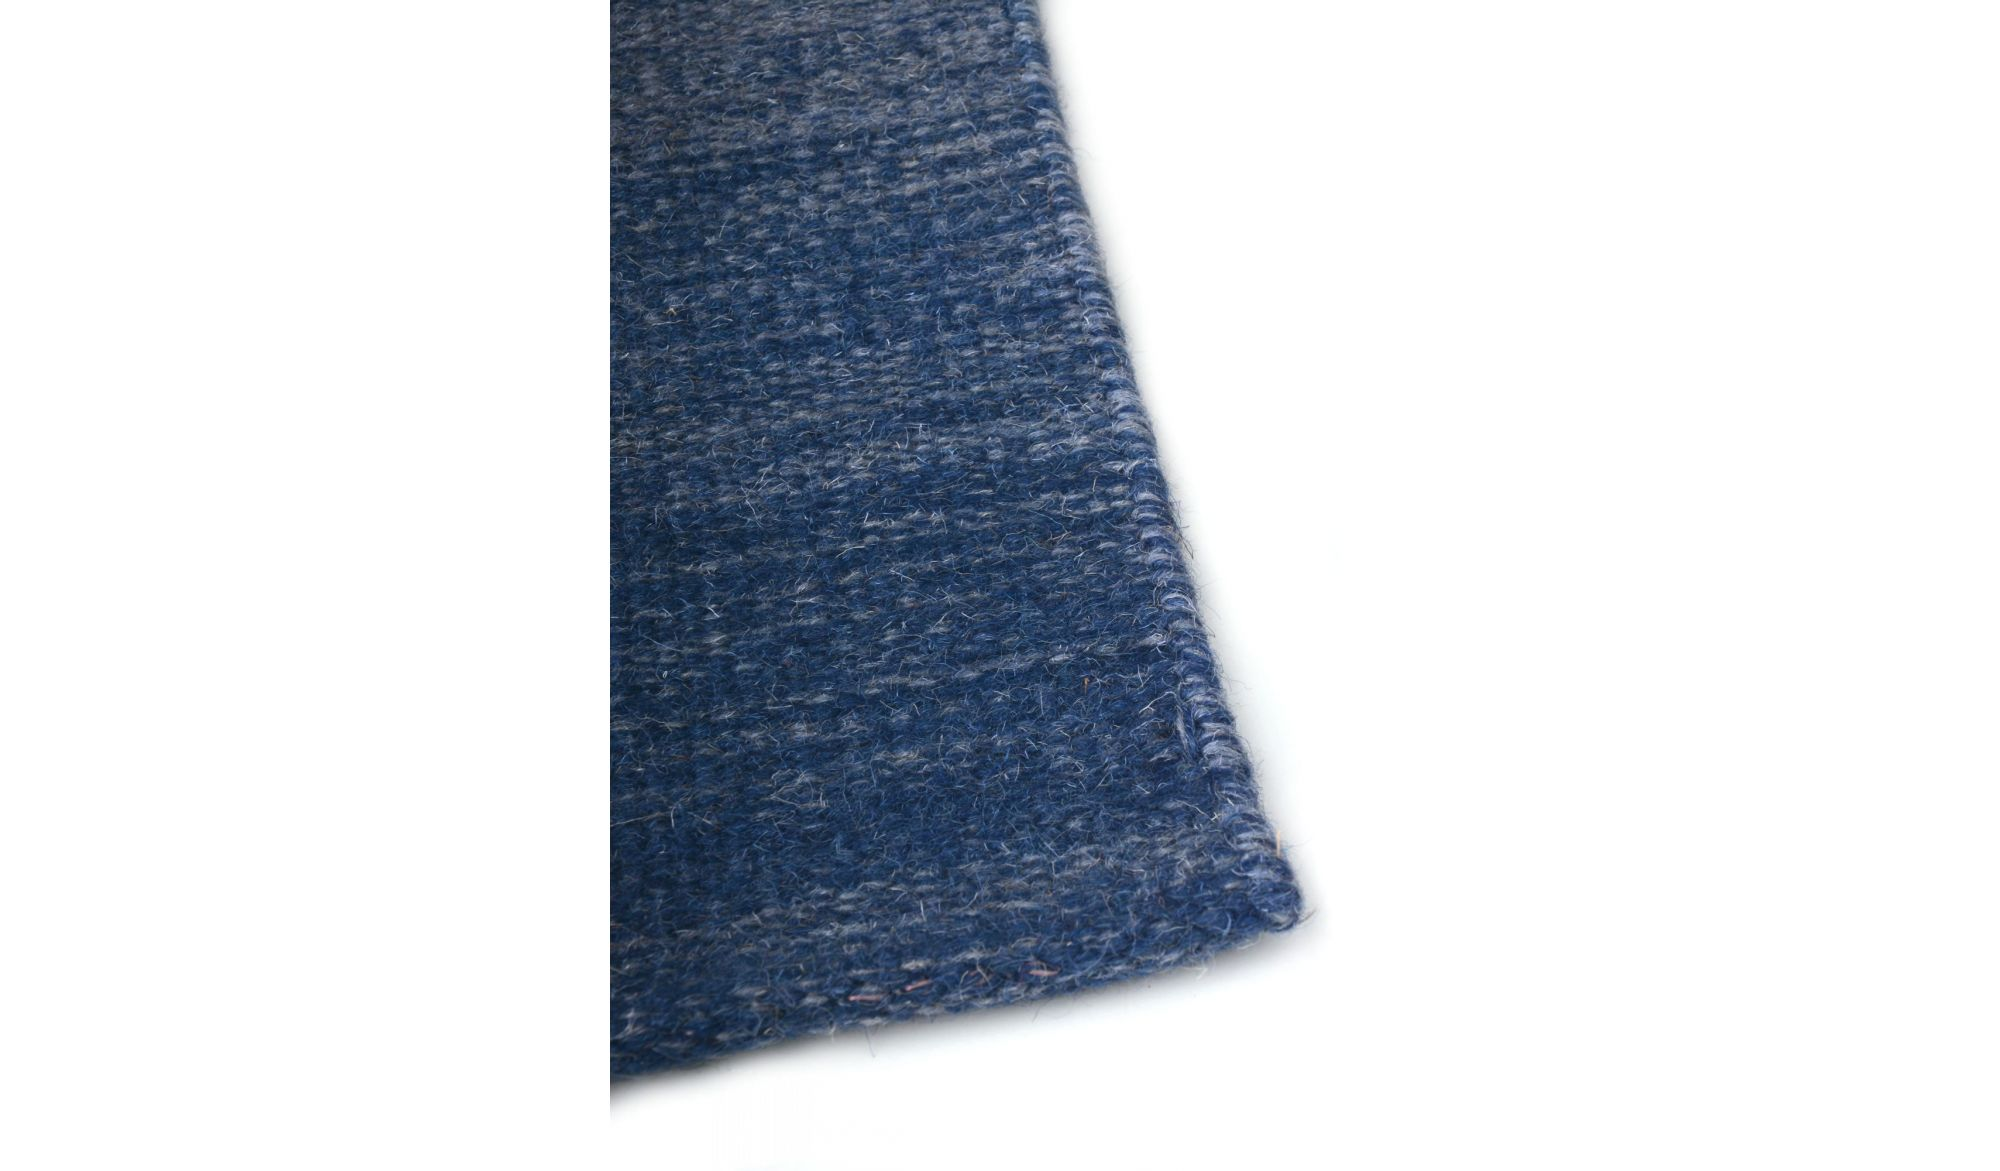 DYWAN 216.002 300 Size 140X200 - Carpet alt_dywany_kolor_300 size 140x200 Checked - Texture